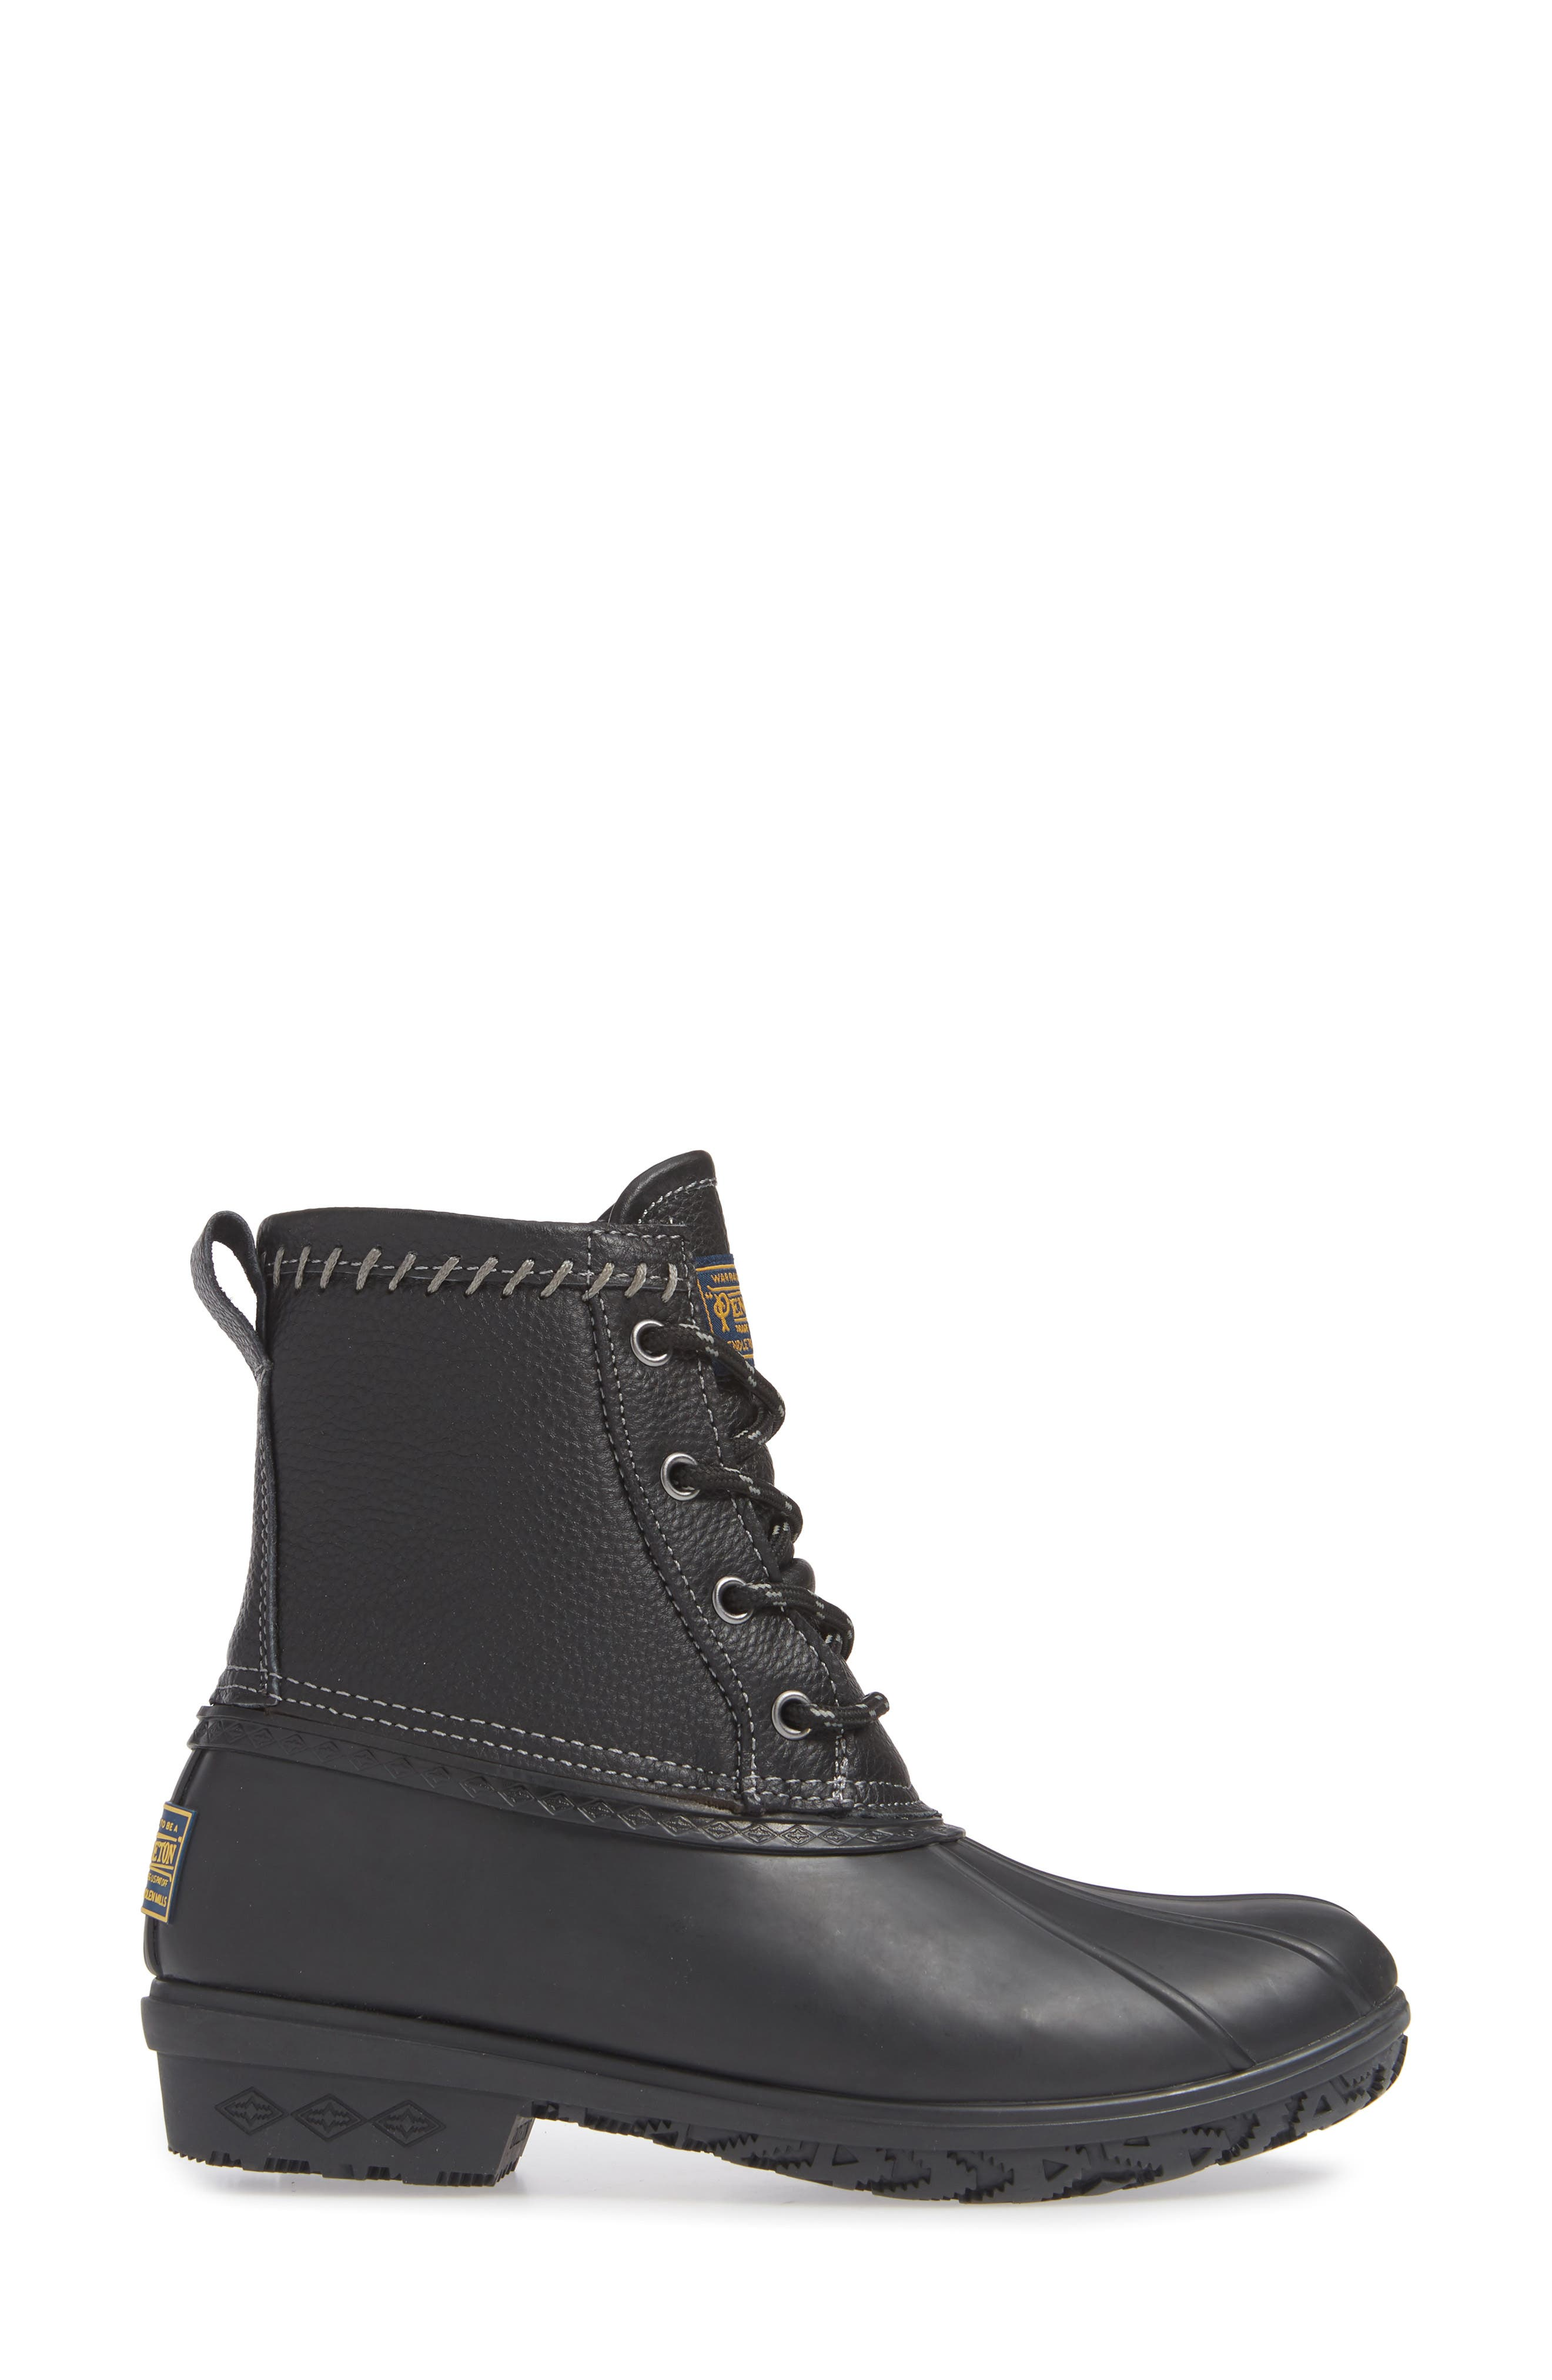 Waterproof Duck Boot,                             Alternate thumbnail 3, color,                             BLACK RUBBER